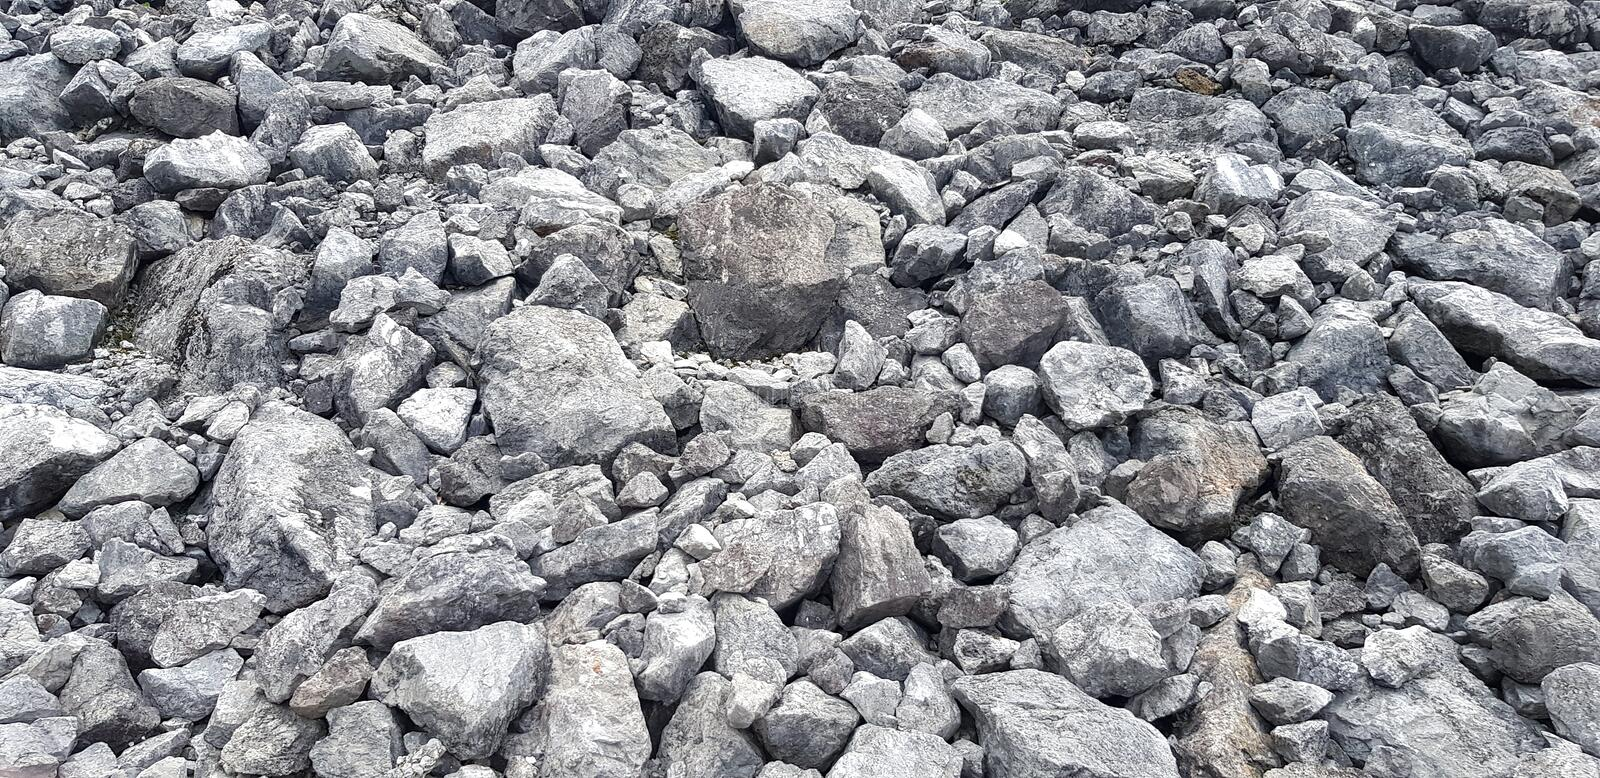 Group of gray stone or rock on ground for background or wallpaper royalty free stock images